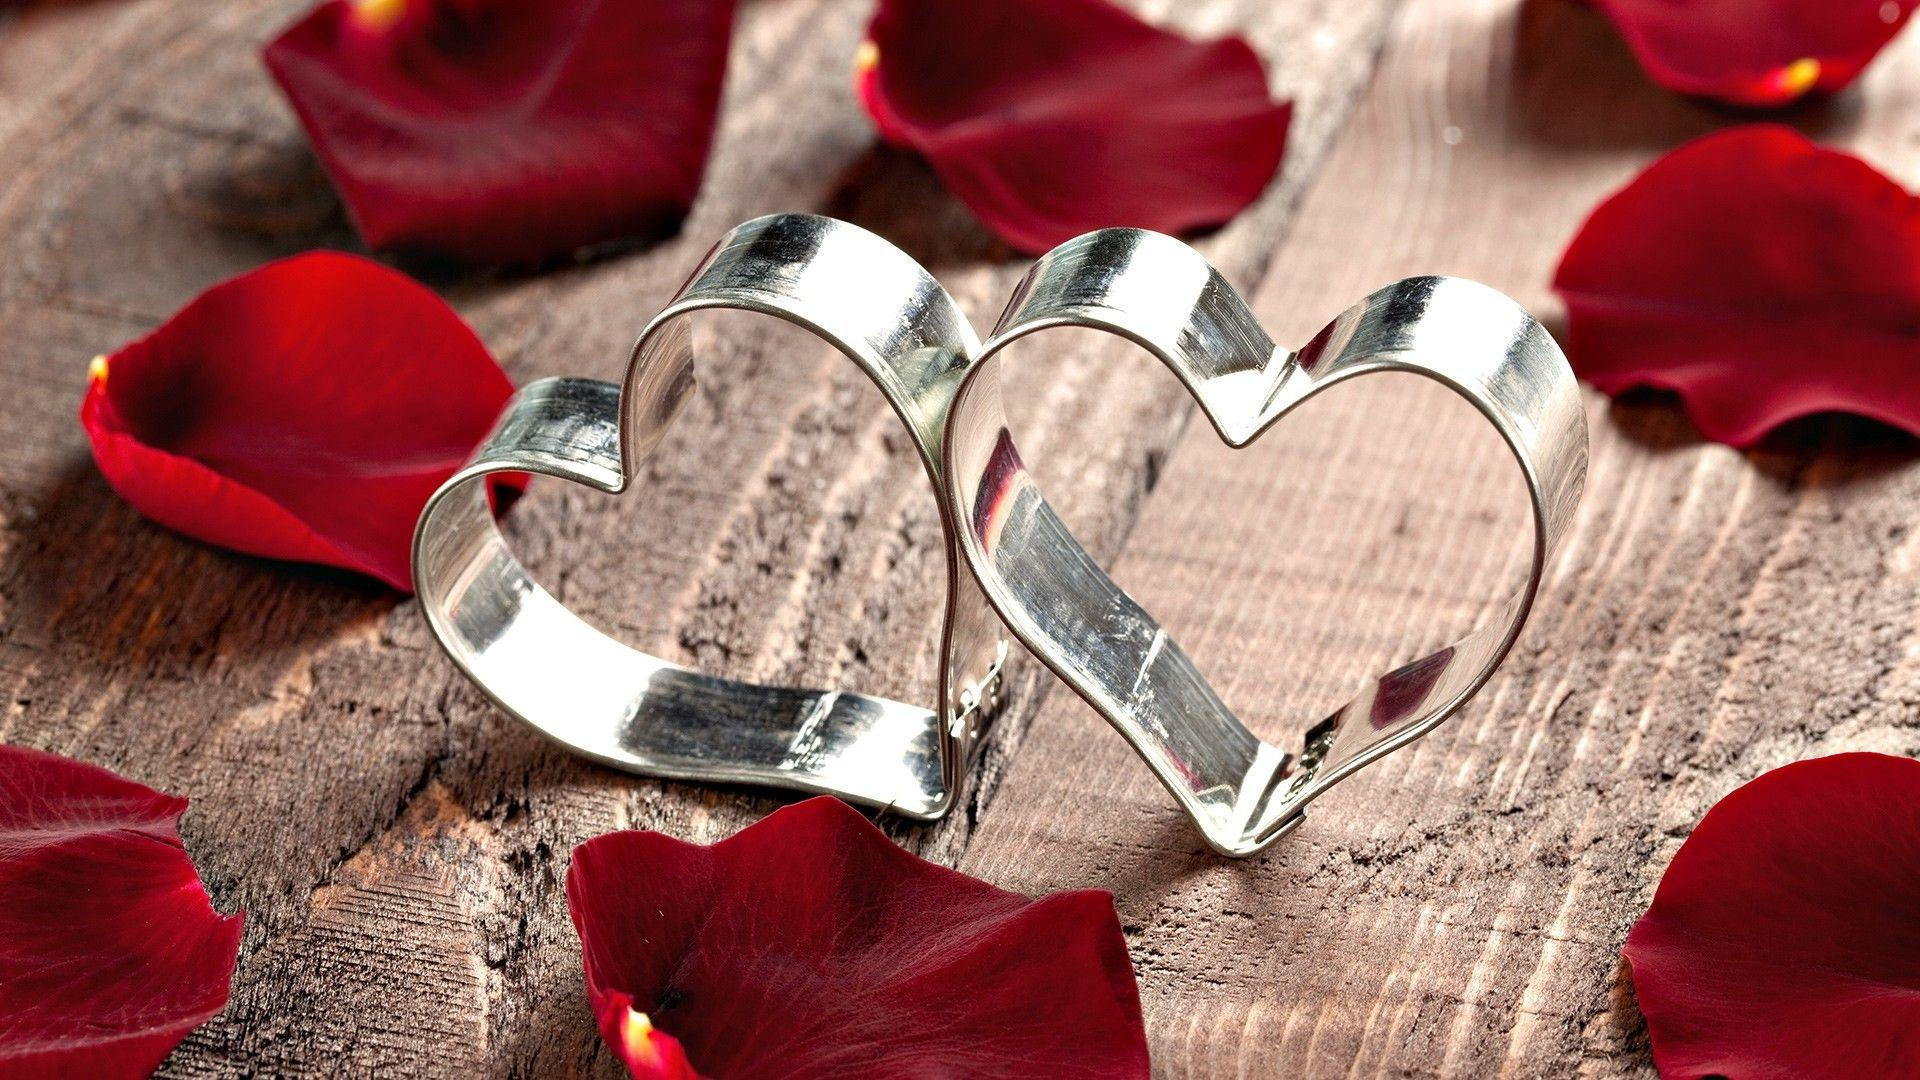 Beautiful Heart Images Wallpapers - Wallpaper Cave